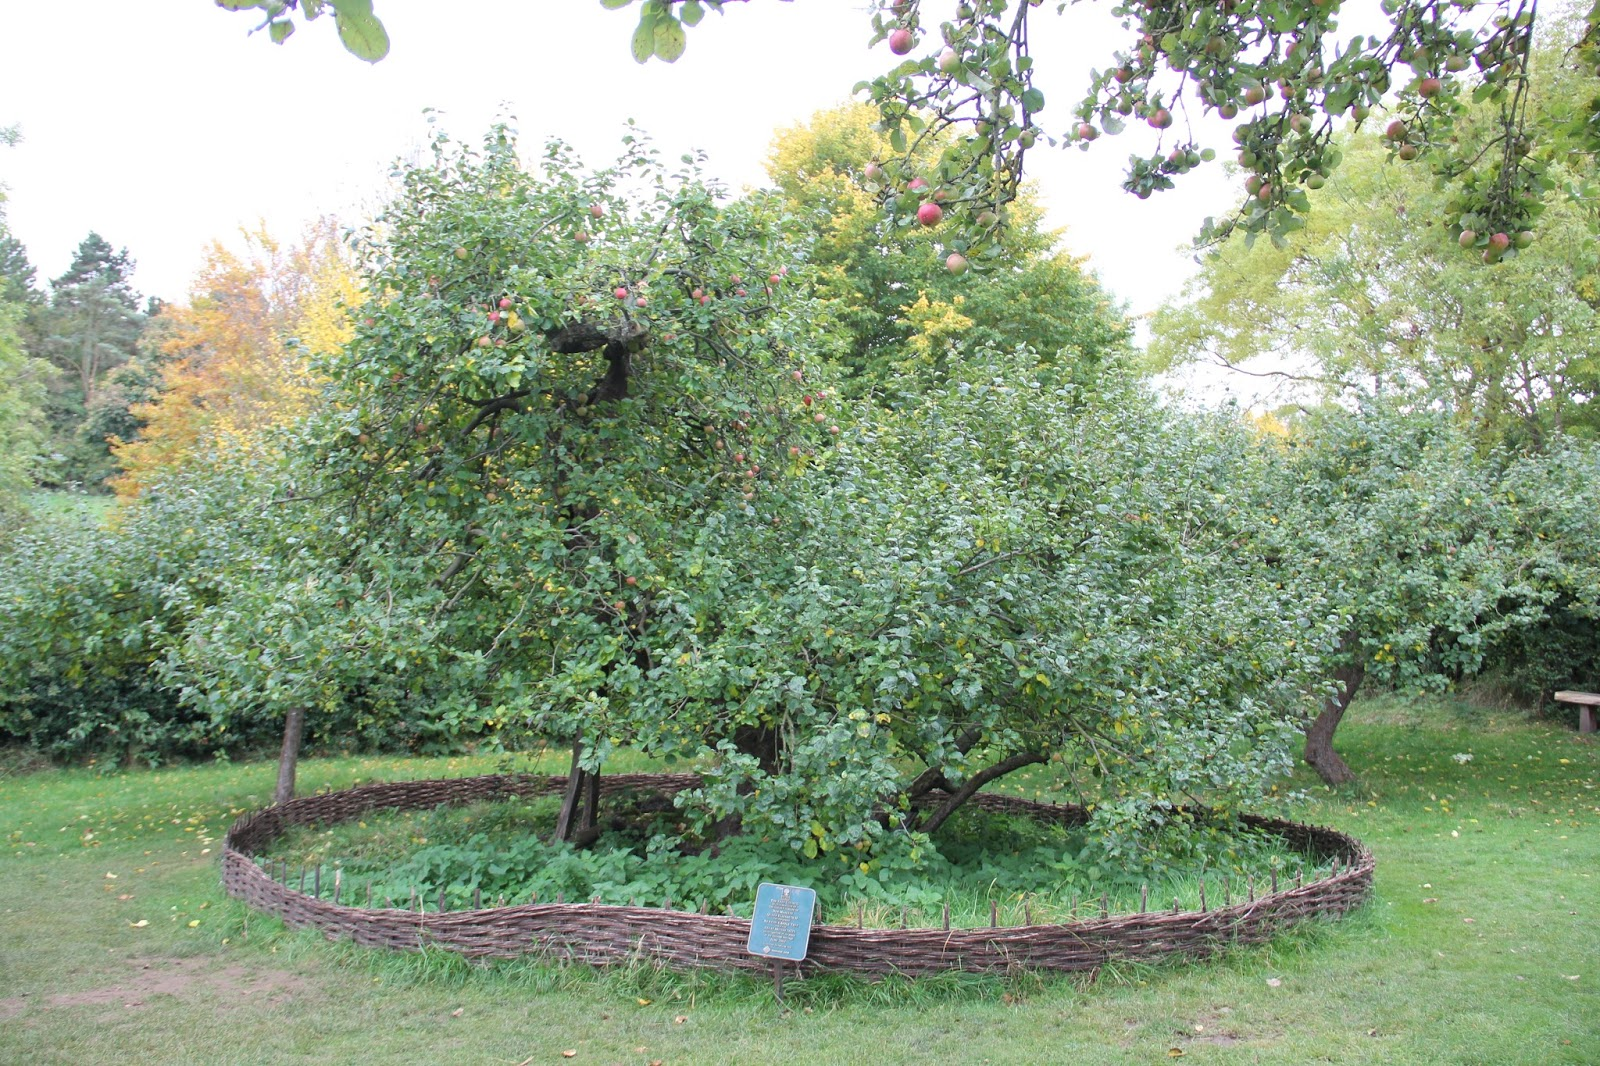 Isaac Newton's apple tree!